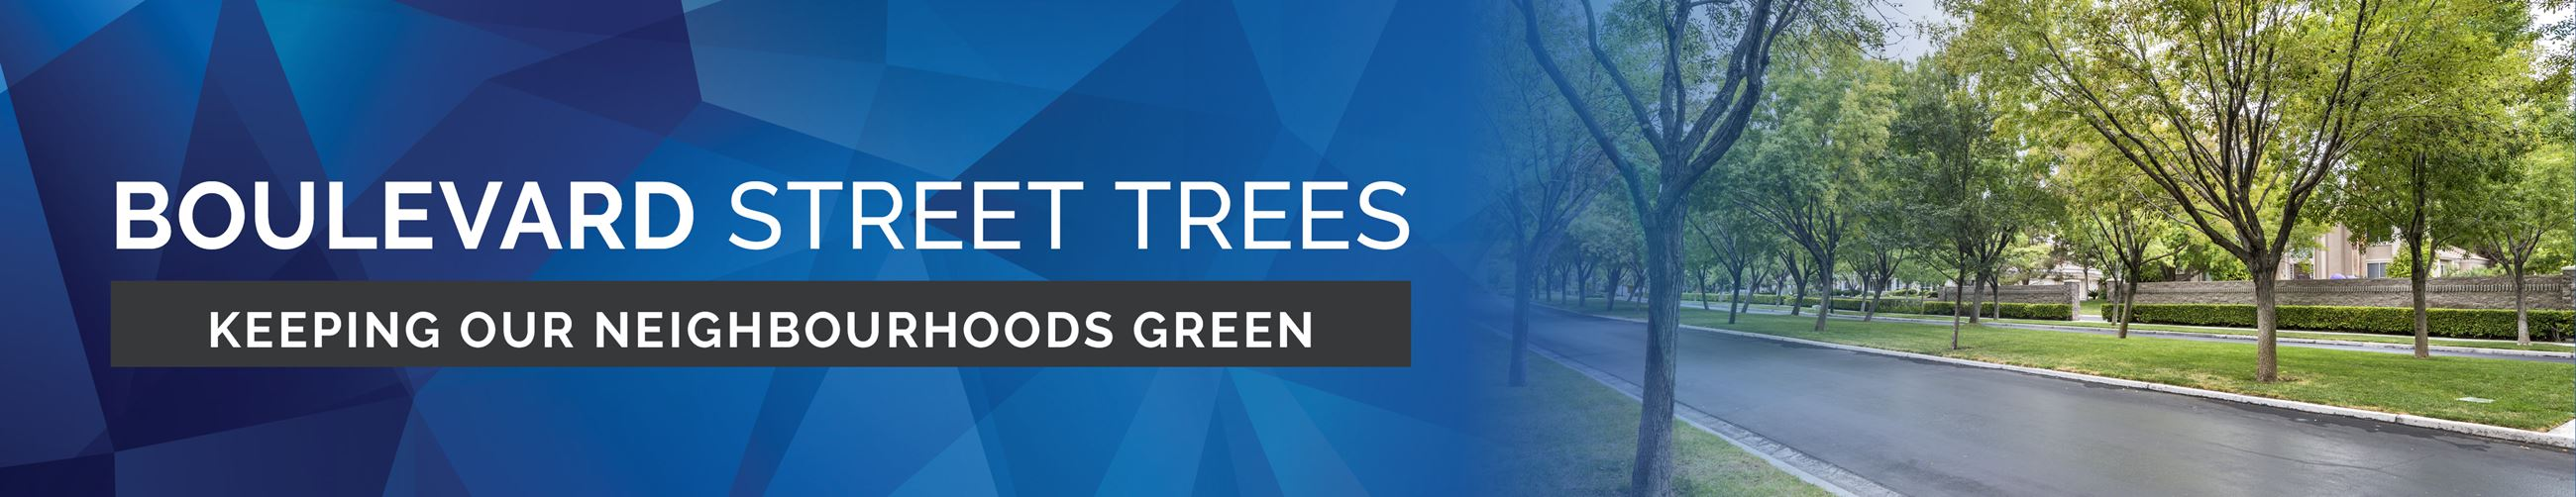 Boulevard Street Trees Page Banner